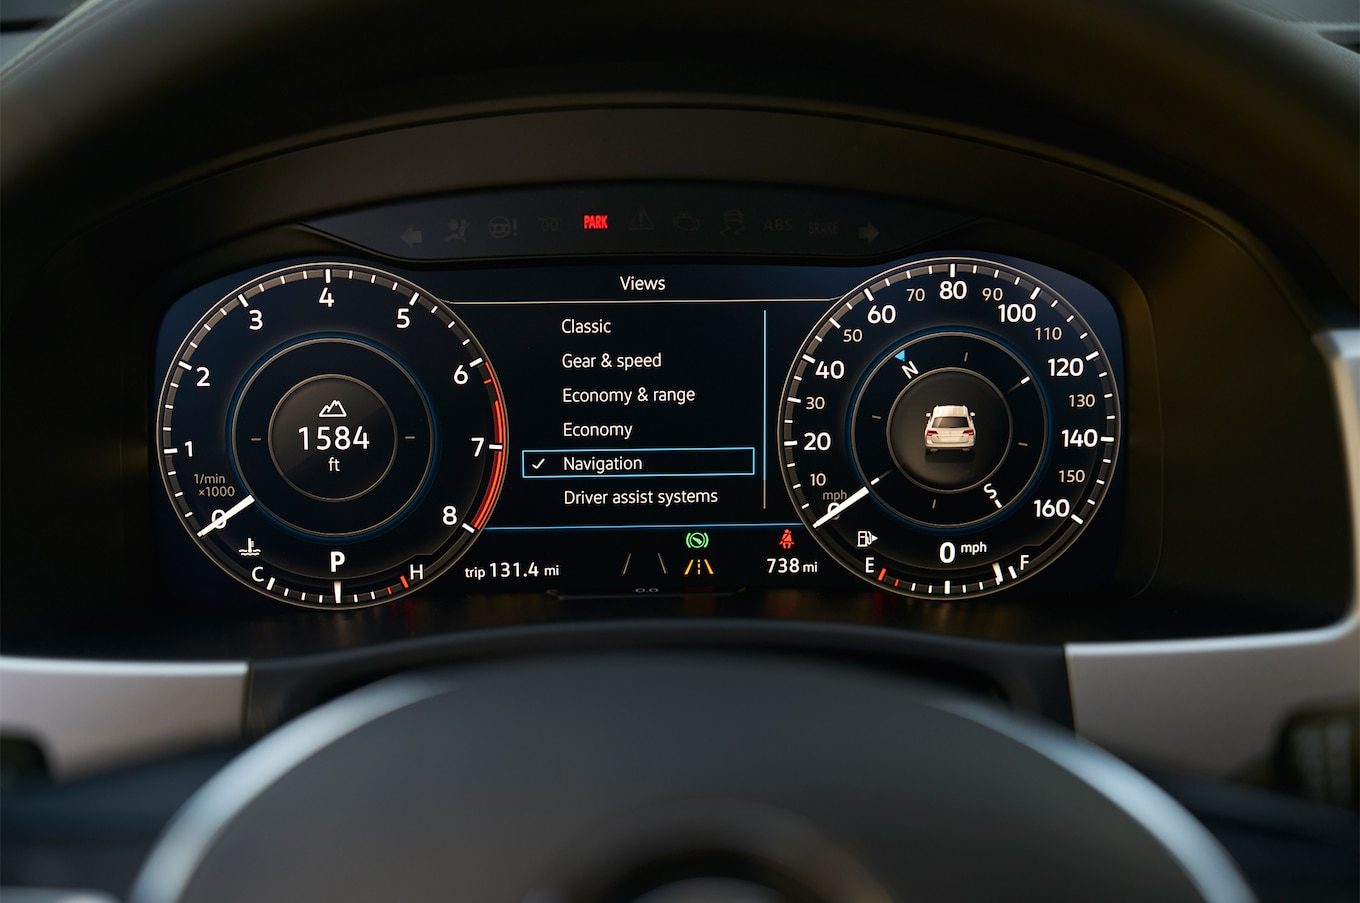 2018 Volkswagen Atlas instrument panel 02